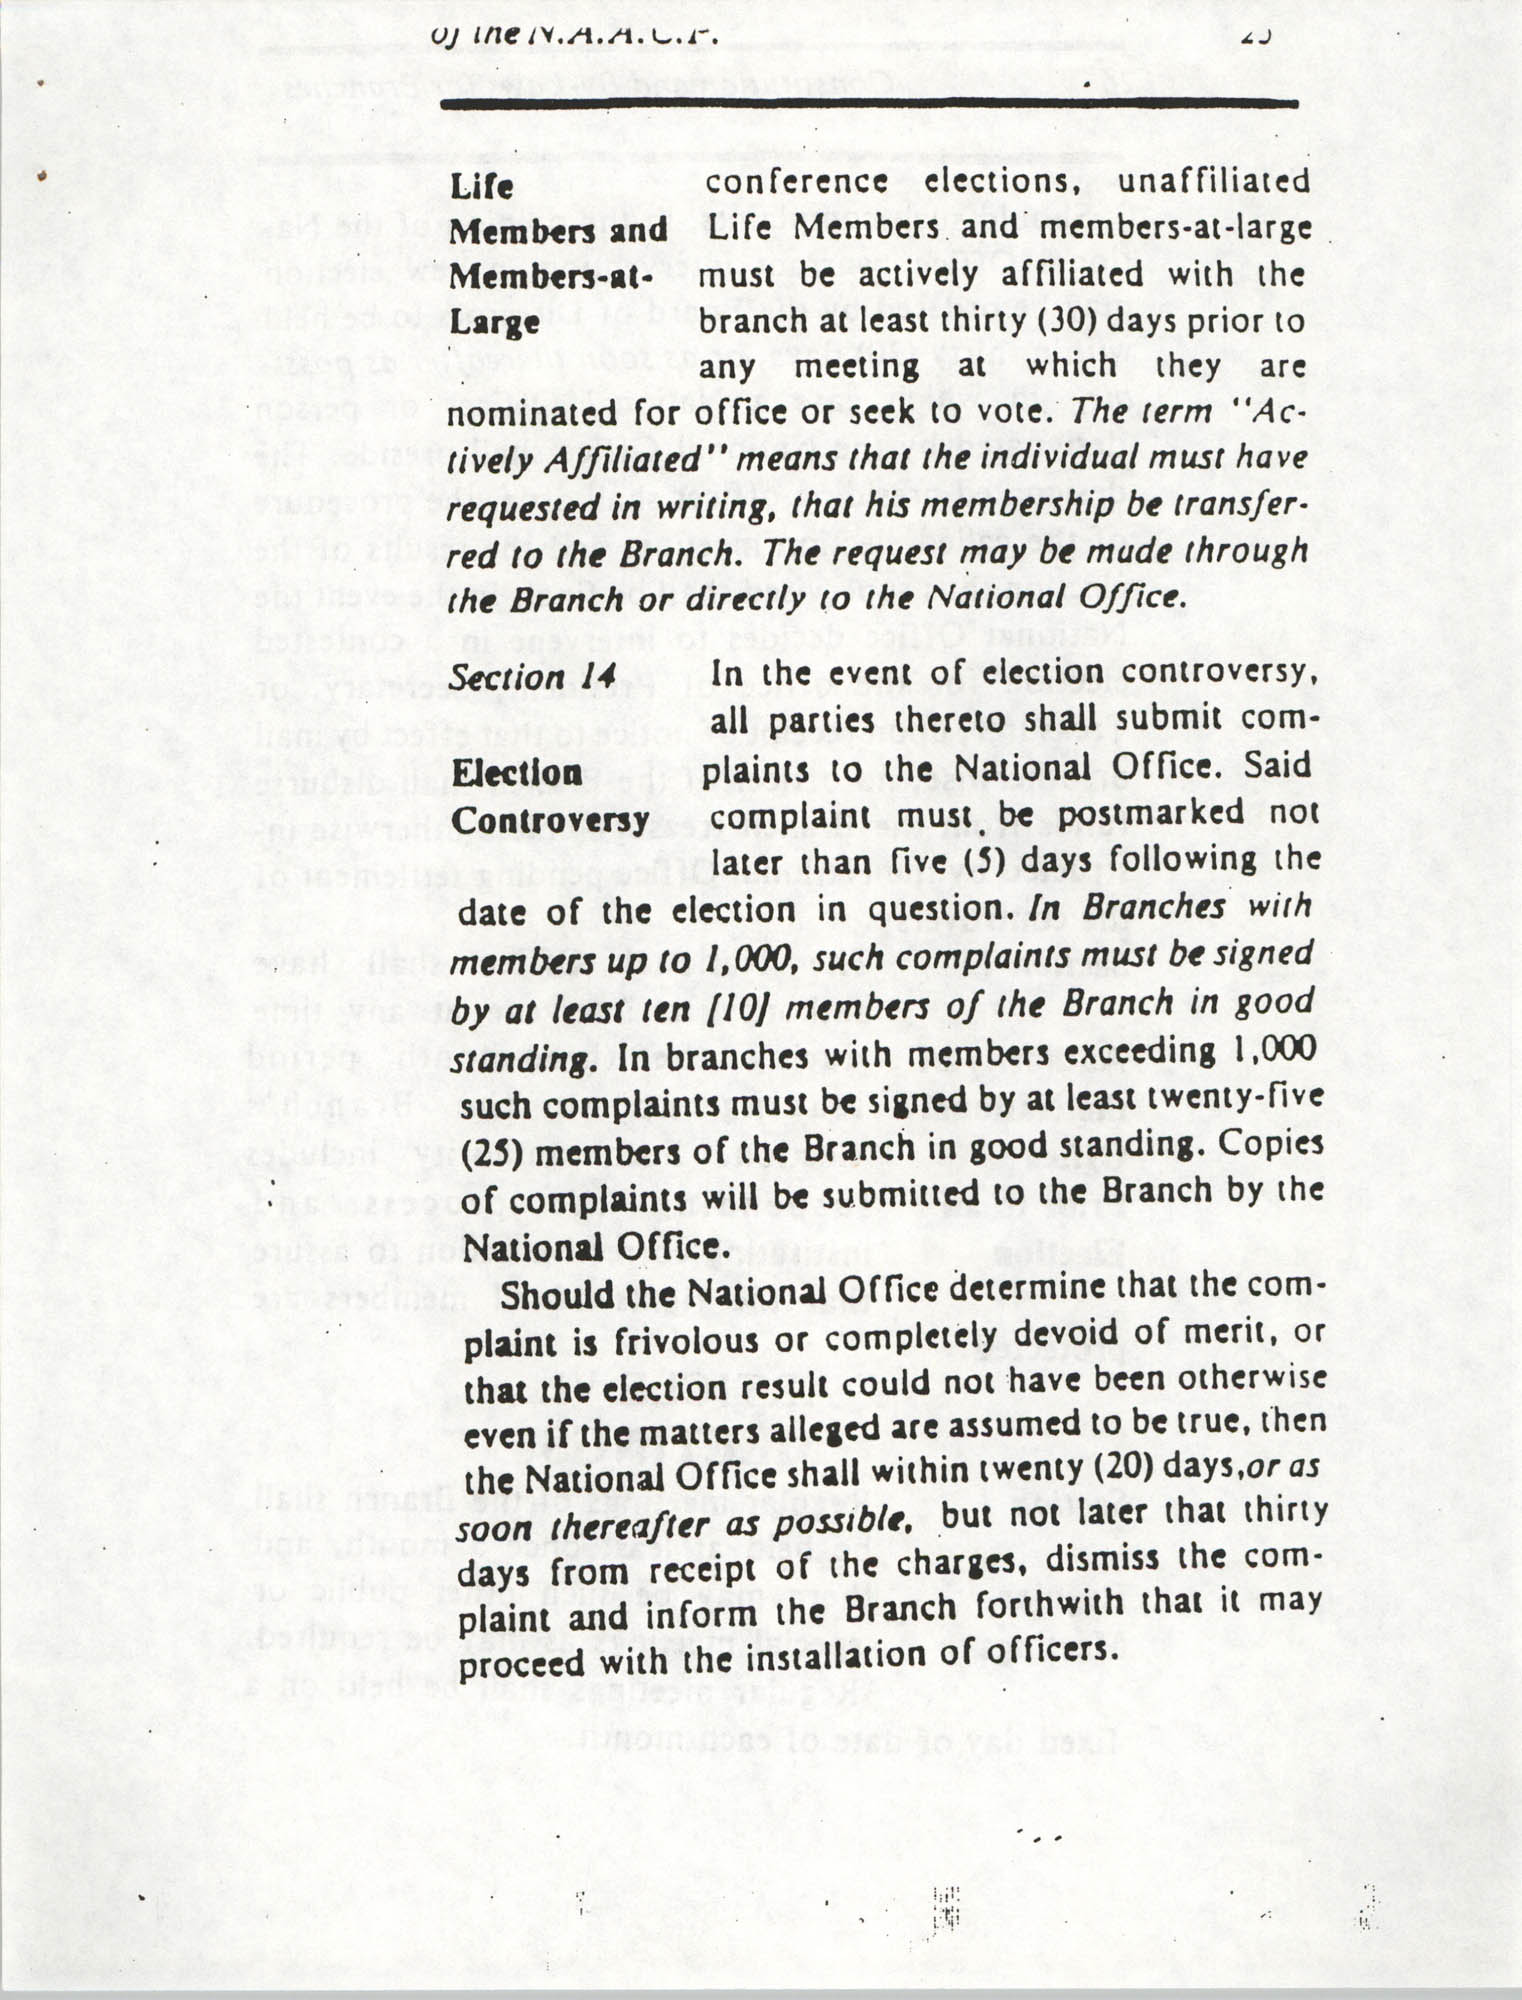 Constitution and By-Laws for Branches of the NAACP, March 1992, Page 25